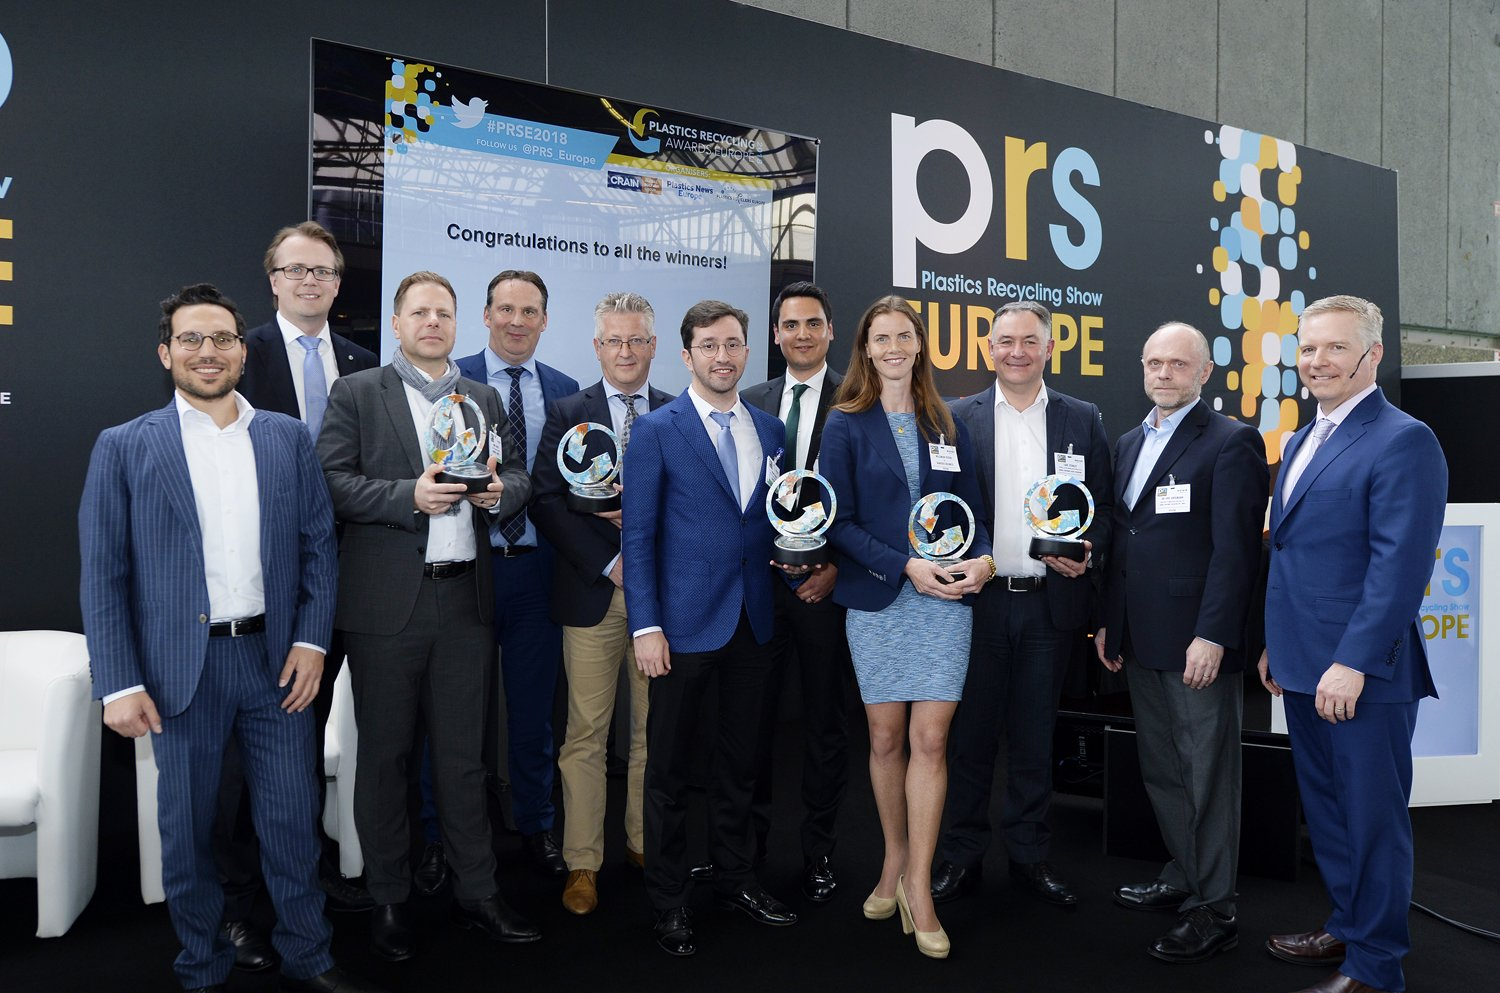 Willemijn Peeters, Director Searious Business, wins Plastic Recycling Europe Award 2018